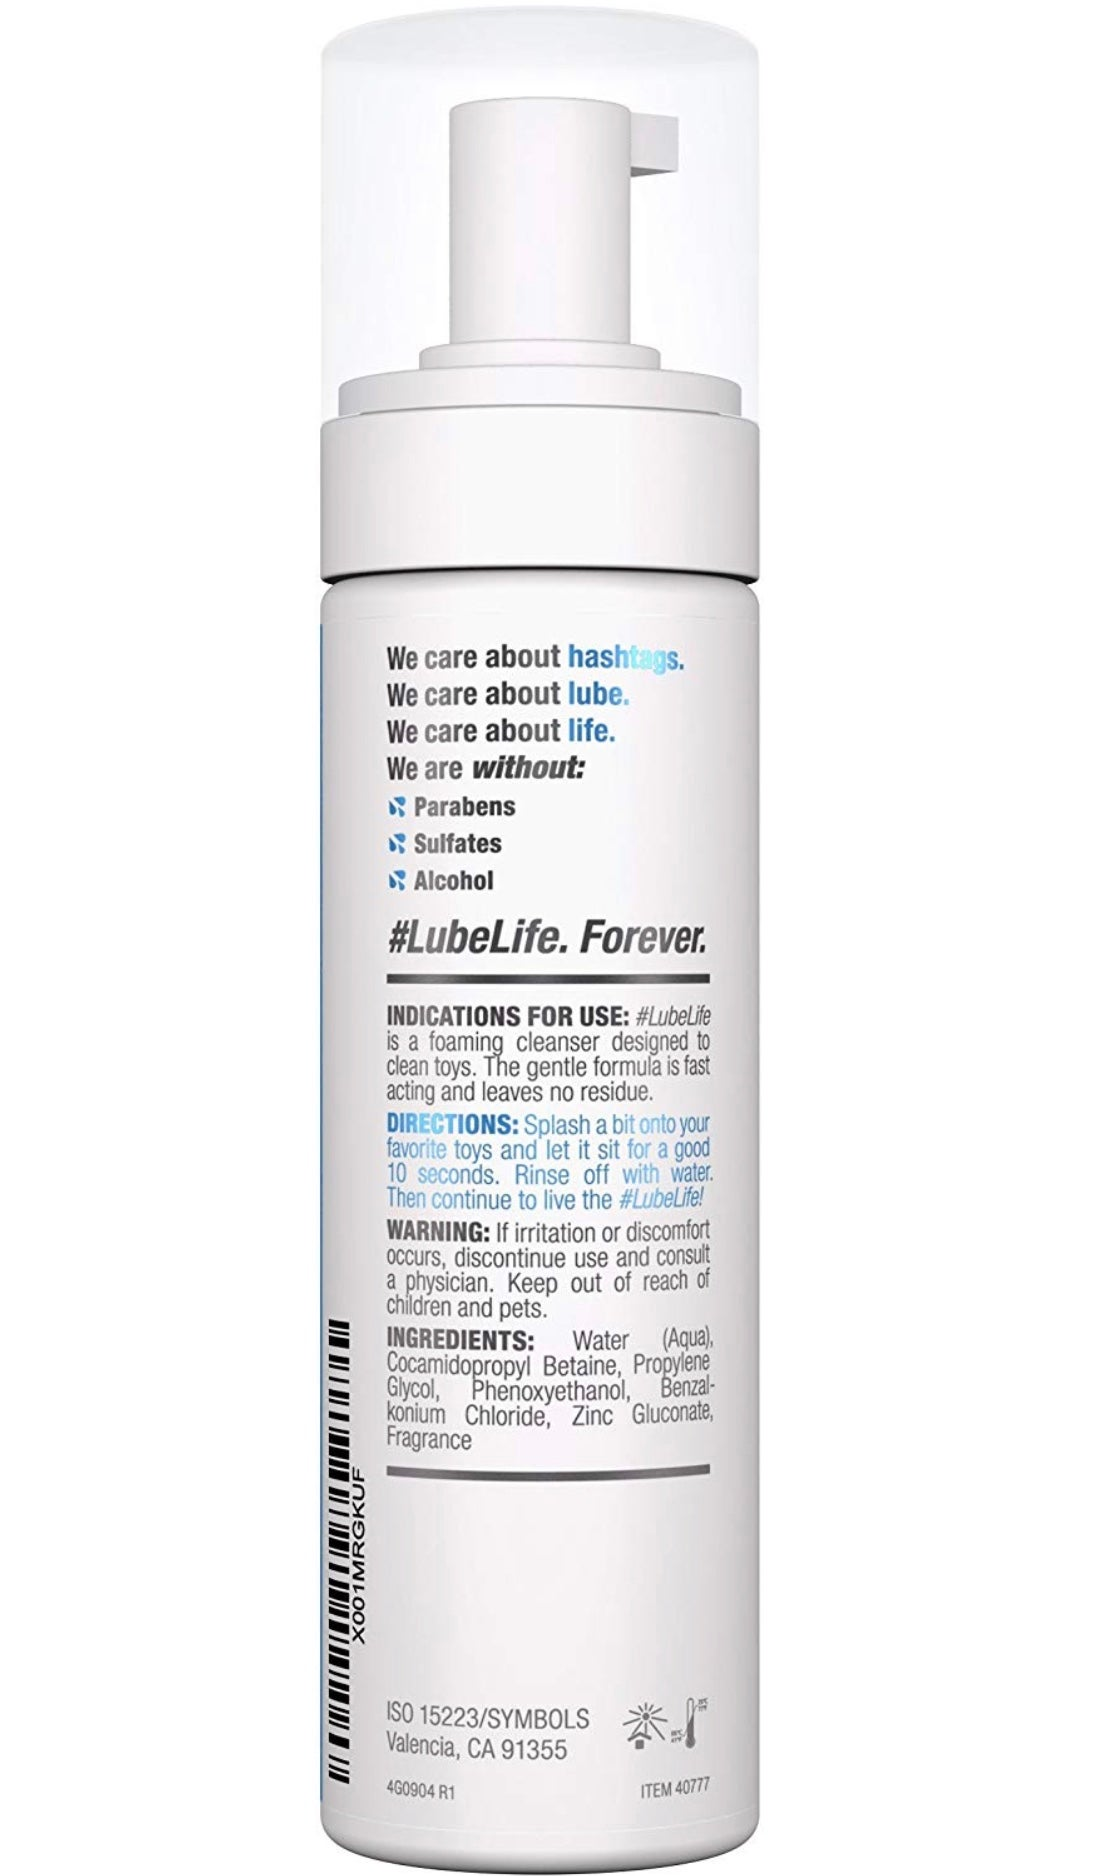 Image of #LUBELIFE Toy Cleaner